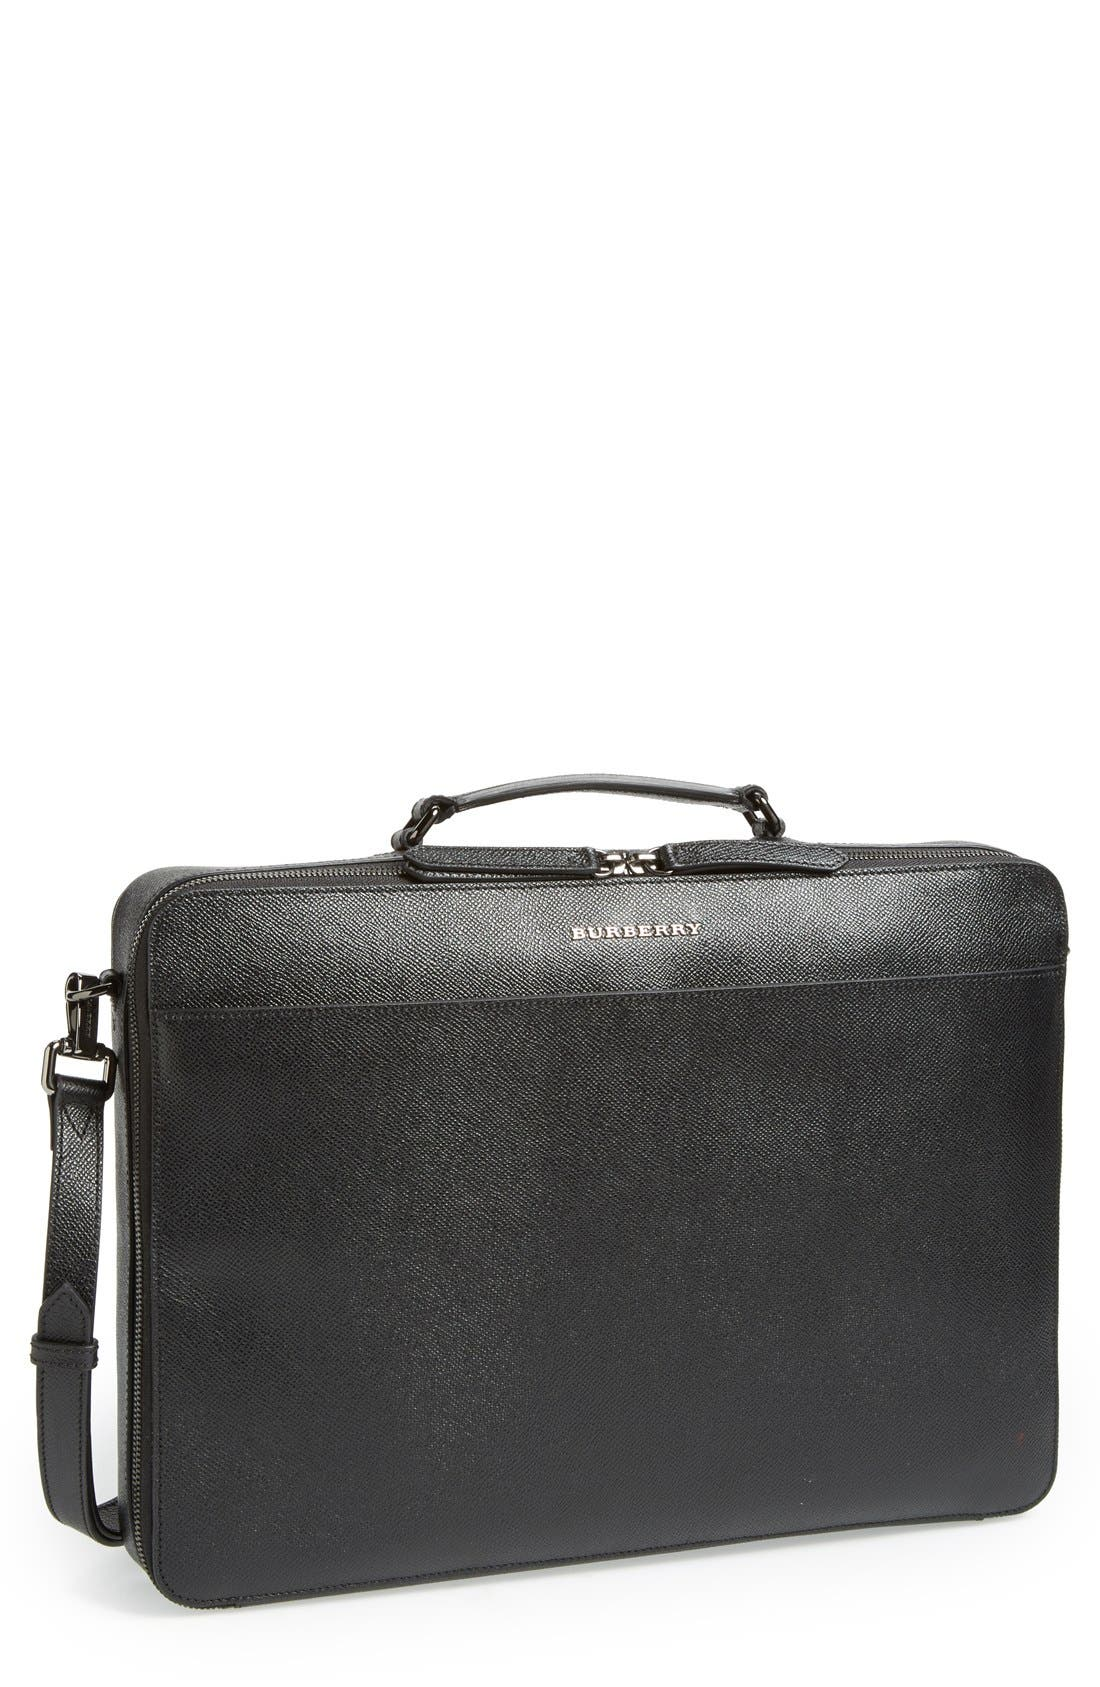 Alternate Image 1 Selected - Burberry 'Blackmore' Leather Computer Briefcase